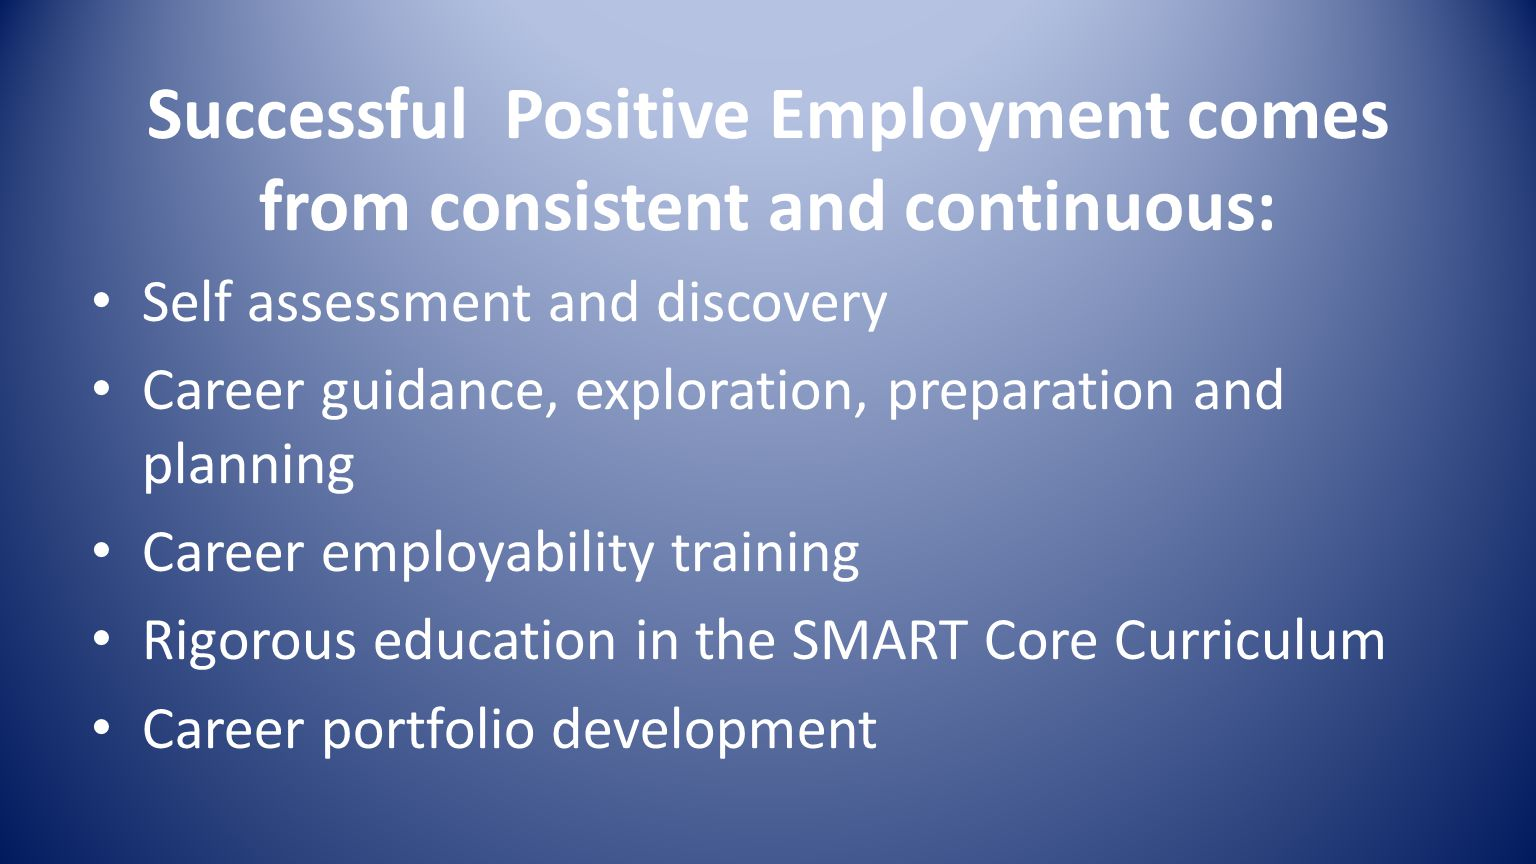 Successful Positive Employment comes from consistent and continuous: Self assessment and discovery Career guidance, exploration, preparation and planning Career employability training Rigorous education in the SMART Core Curriculum Career portfolio development